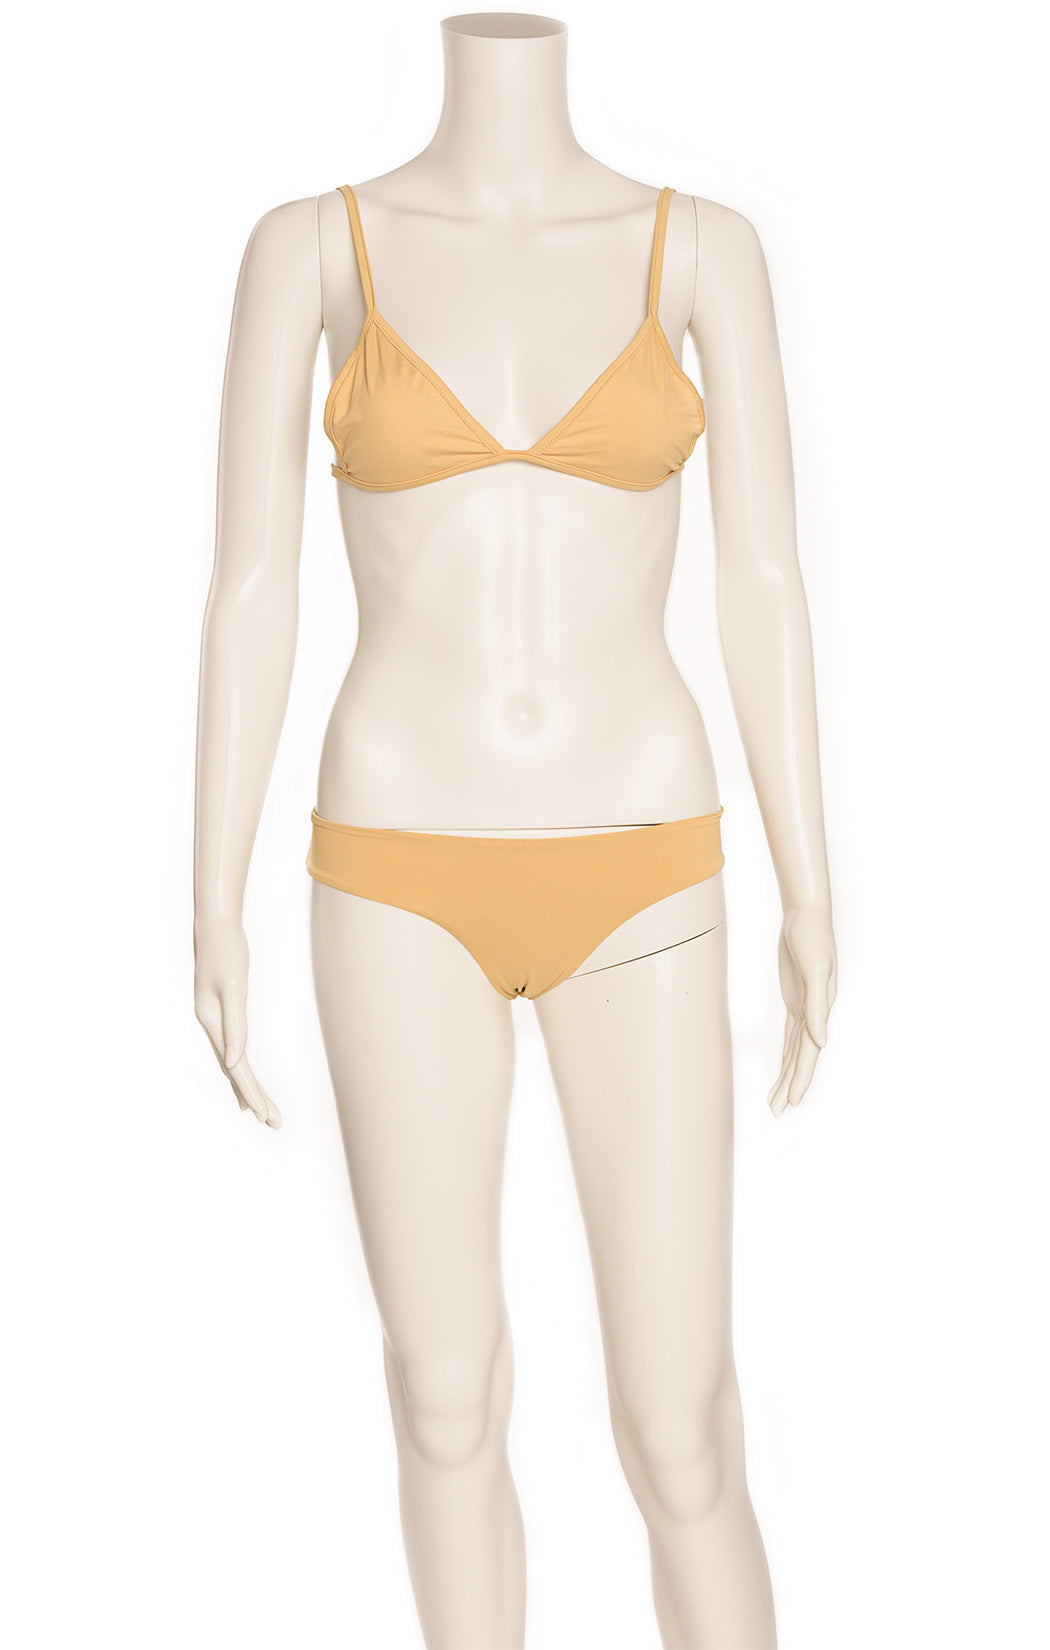 Front view of FRANKIE SWIMWEAR with tags Bikini Size: 10 (runs small)